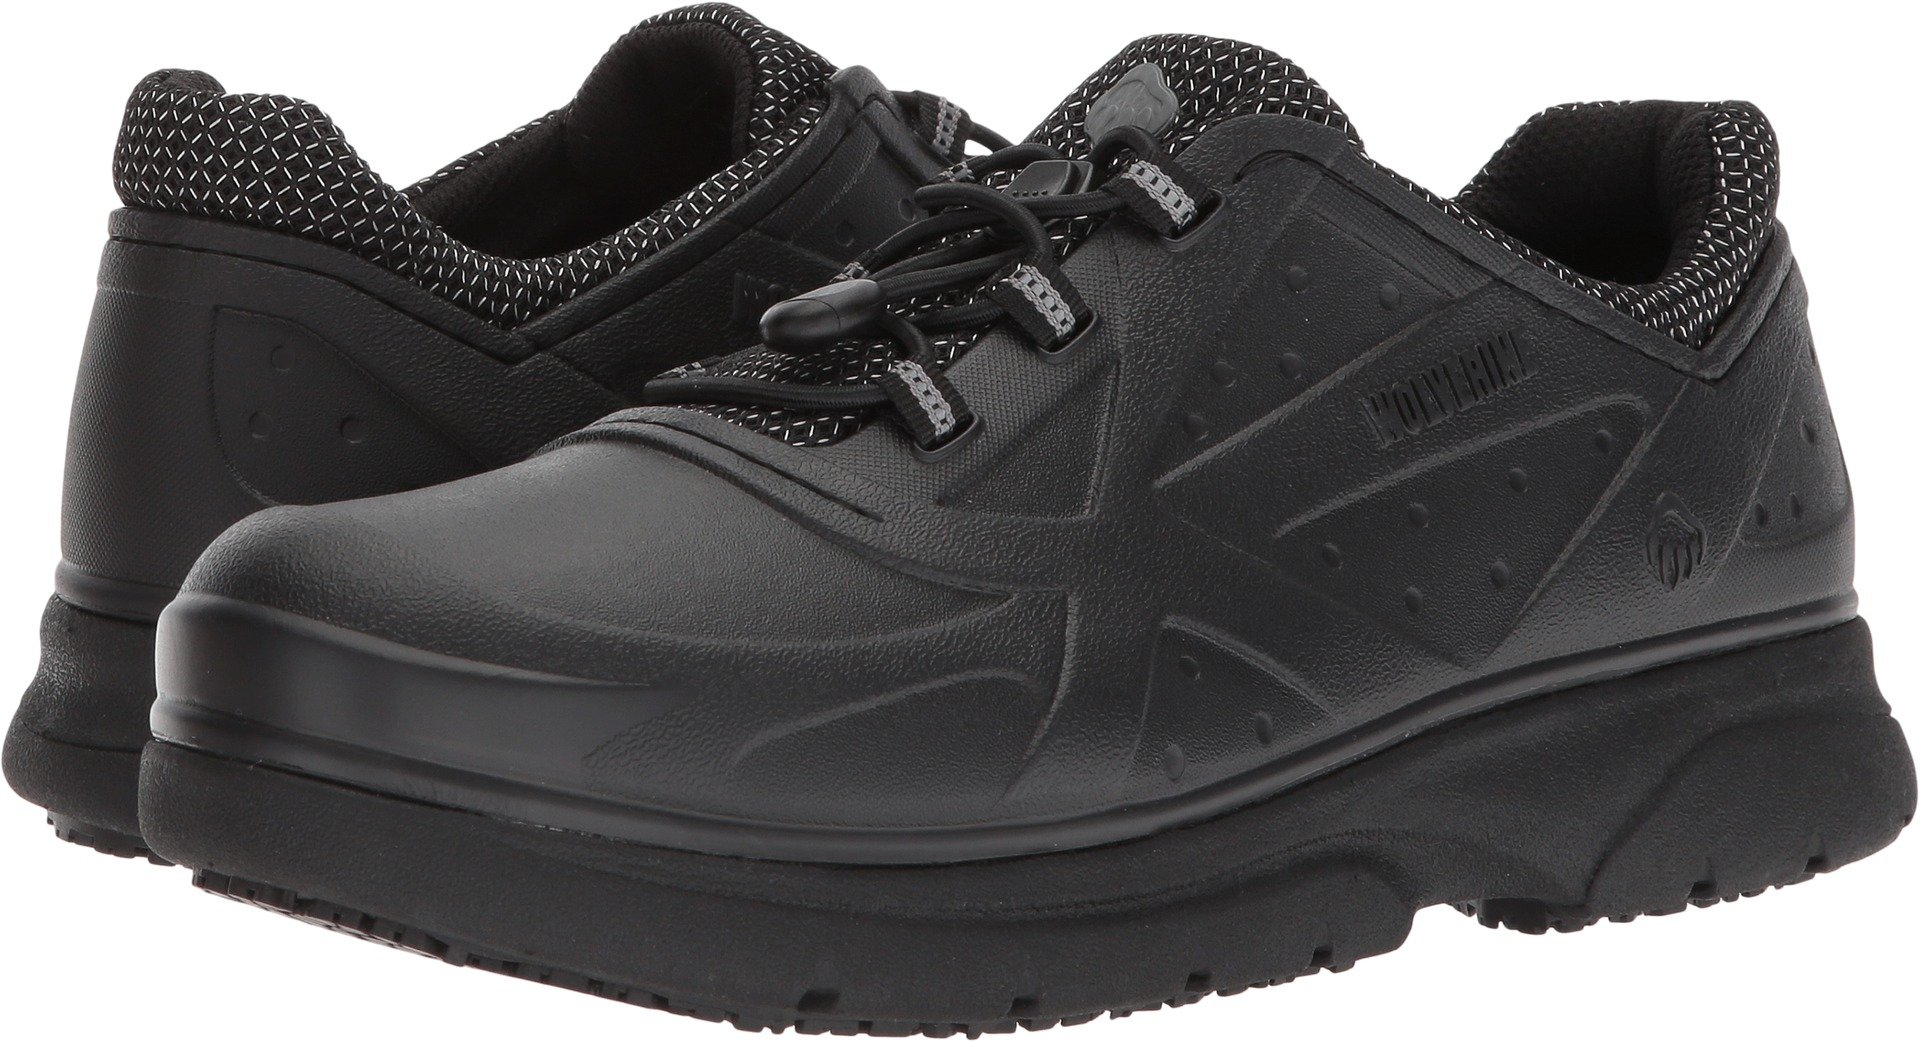 Wolverine Women's Serve SR Health Care Professional Shoe, Black, 8 M US